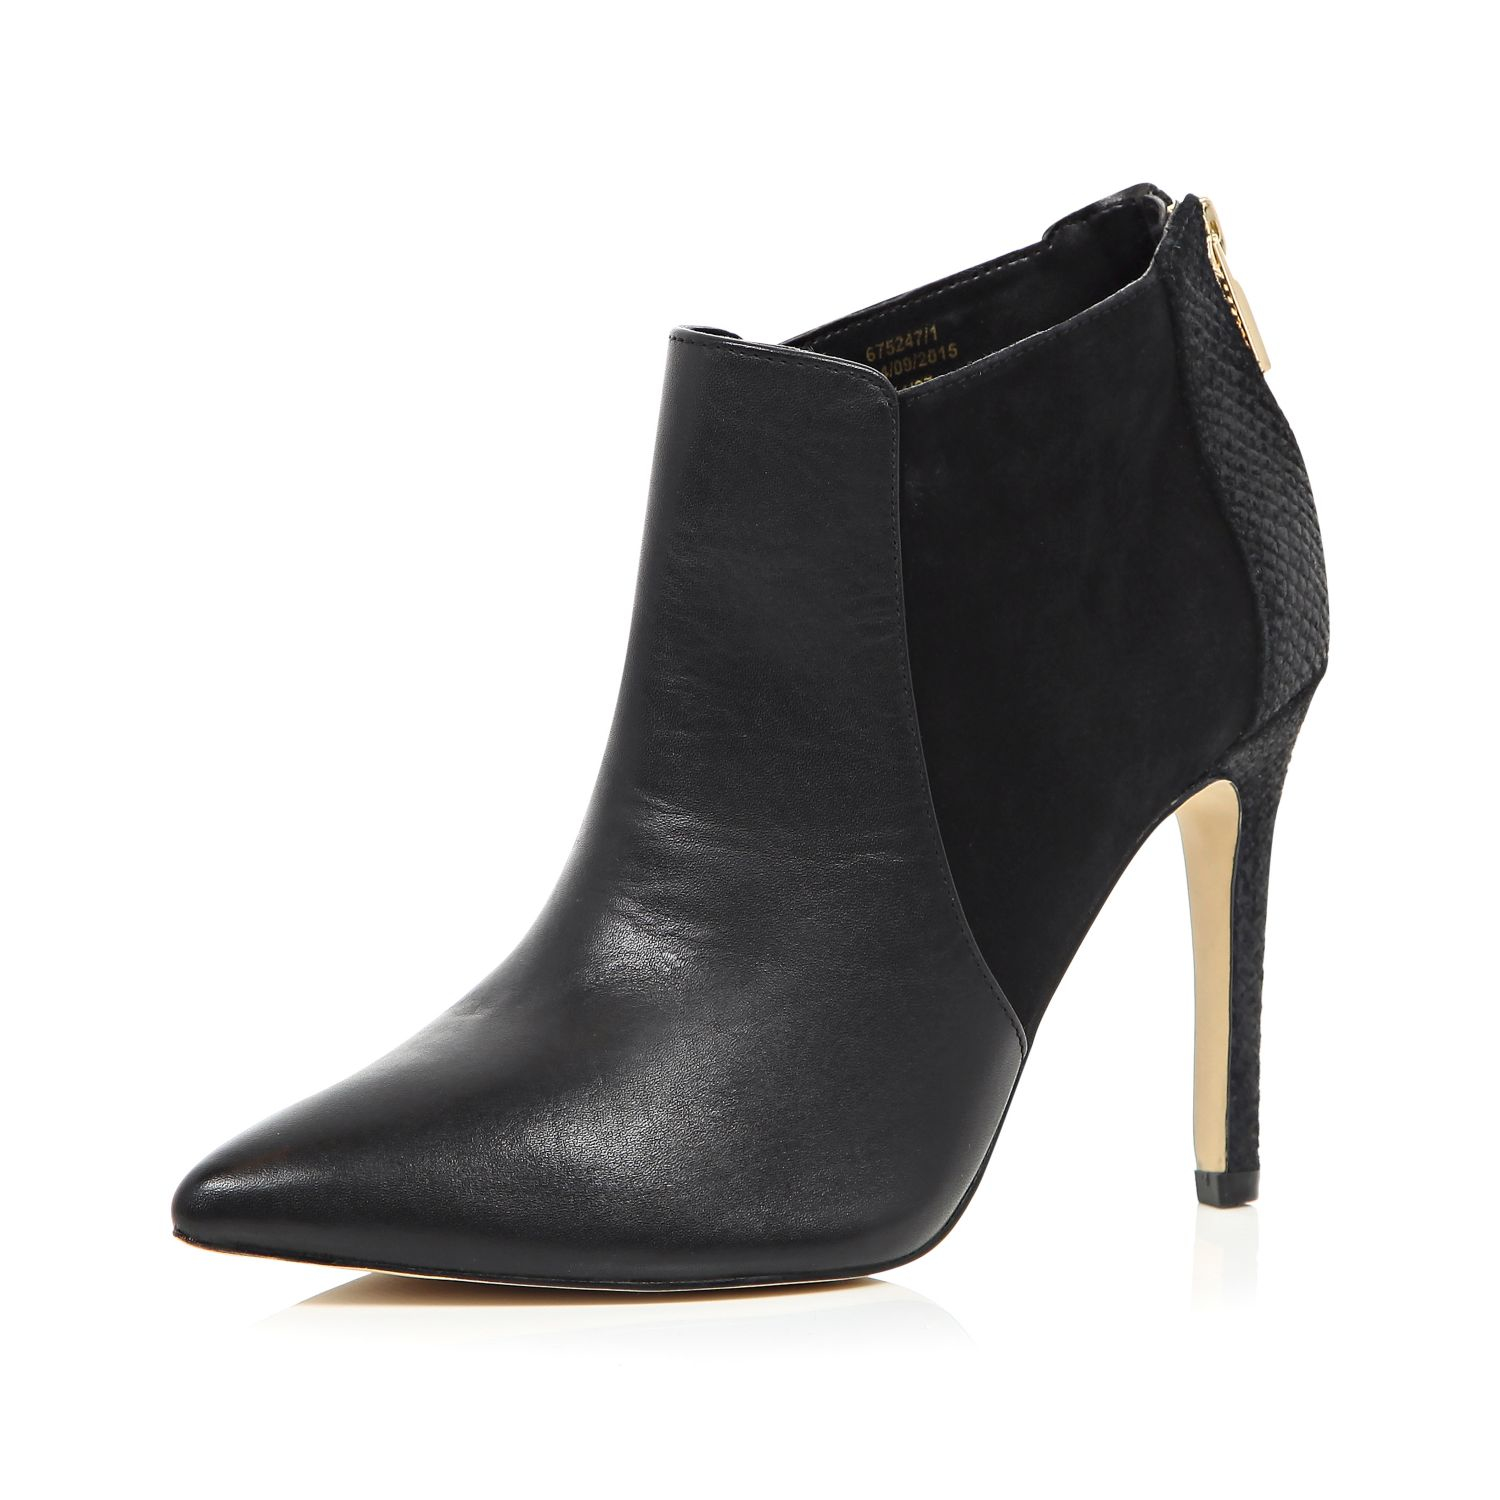 River Island Black Leather Knee High Heeled Boots